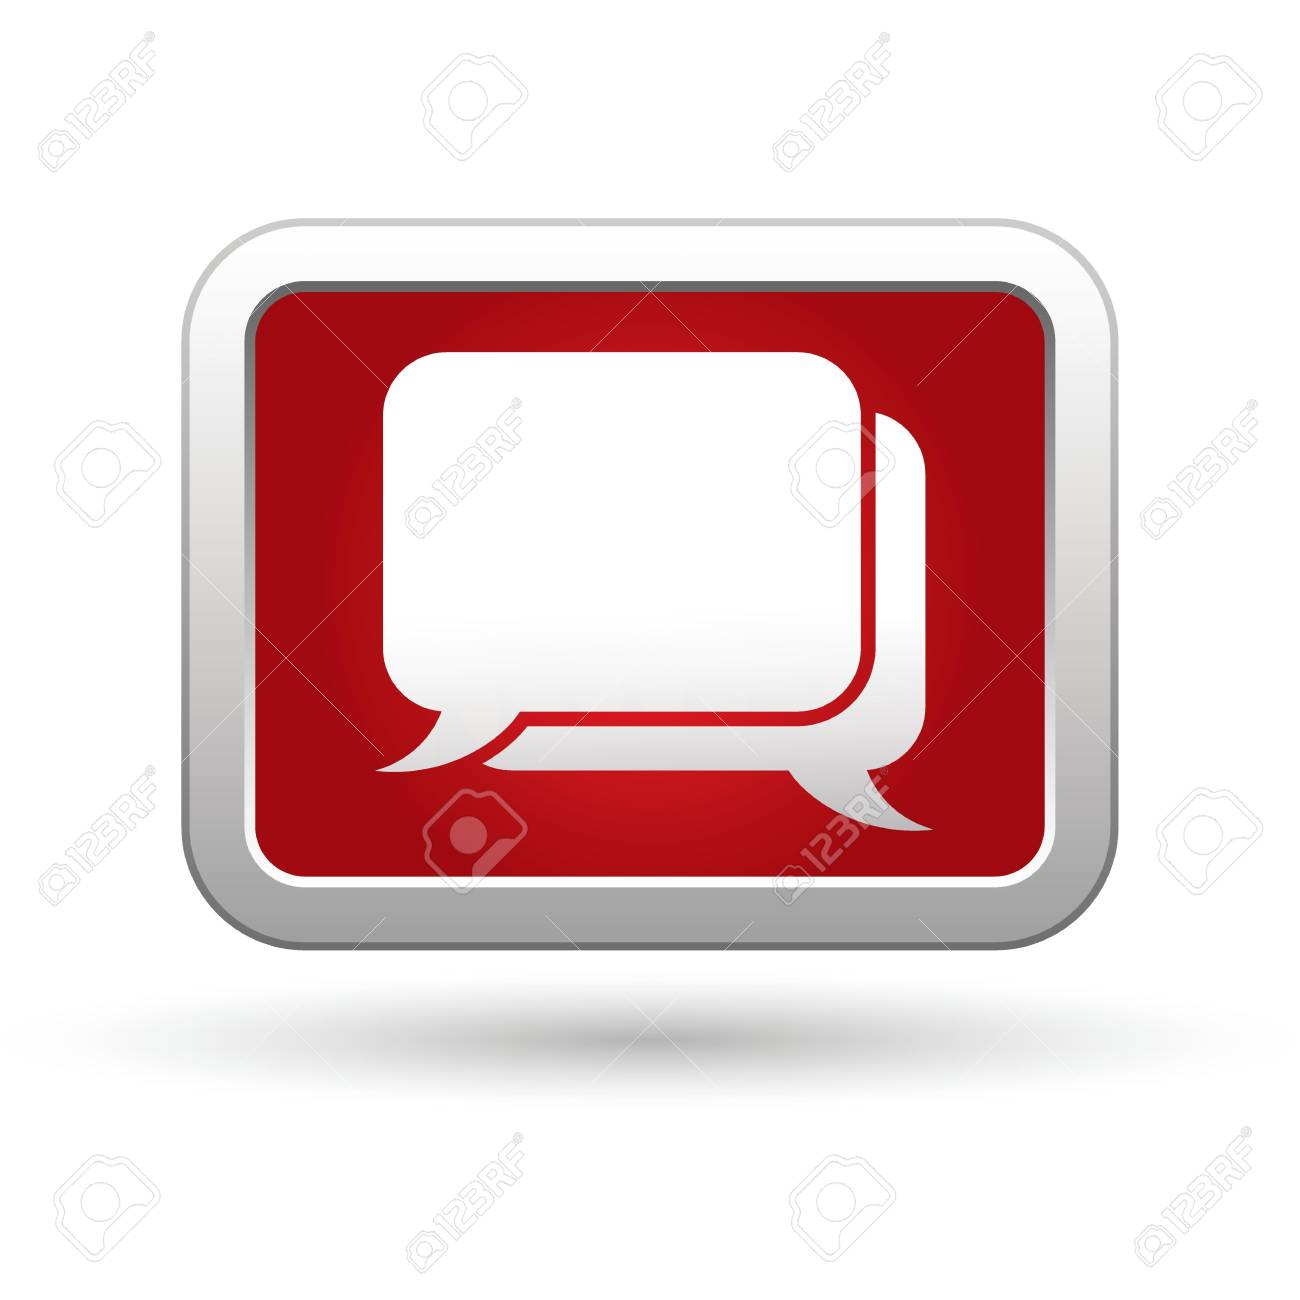 Speech bubbles icon on the red with silver rectangular button illustration Stock Vector - 18936939